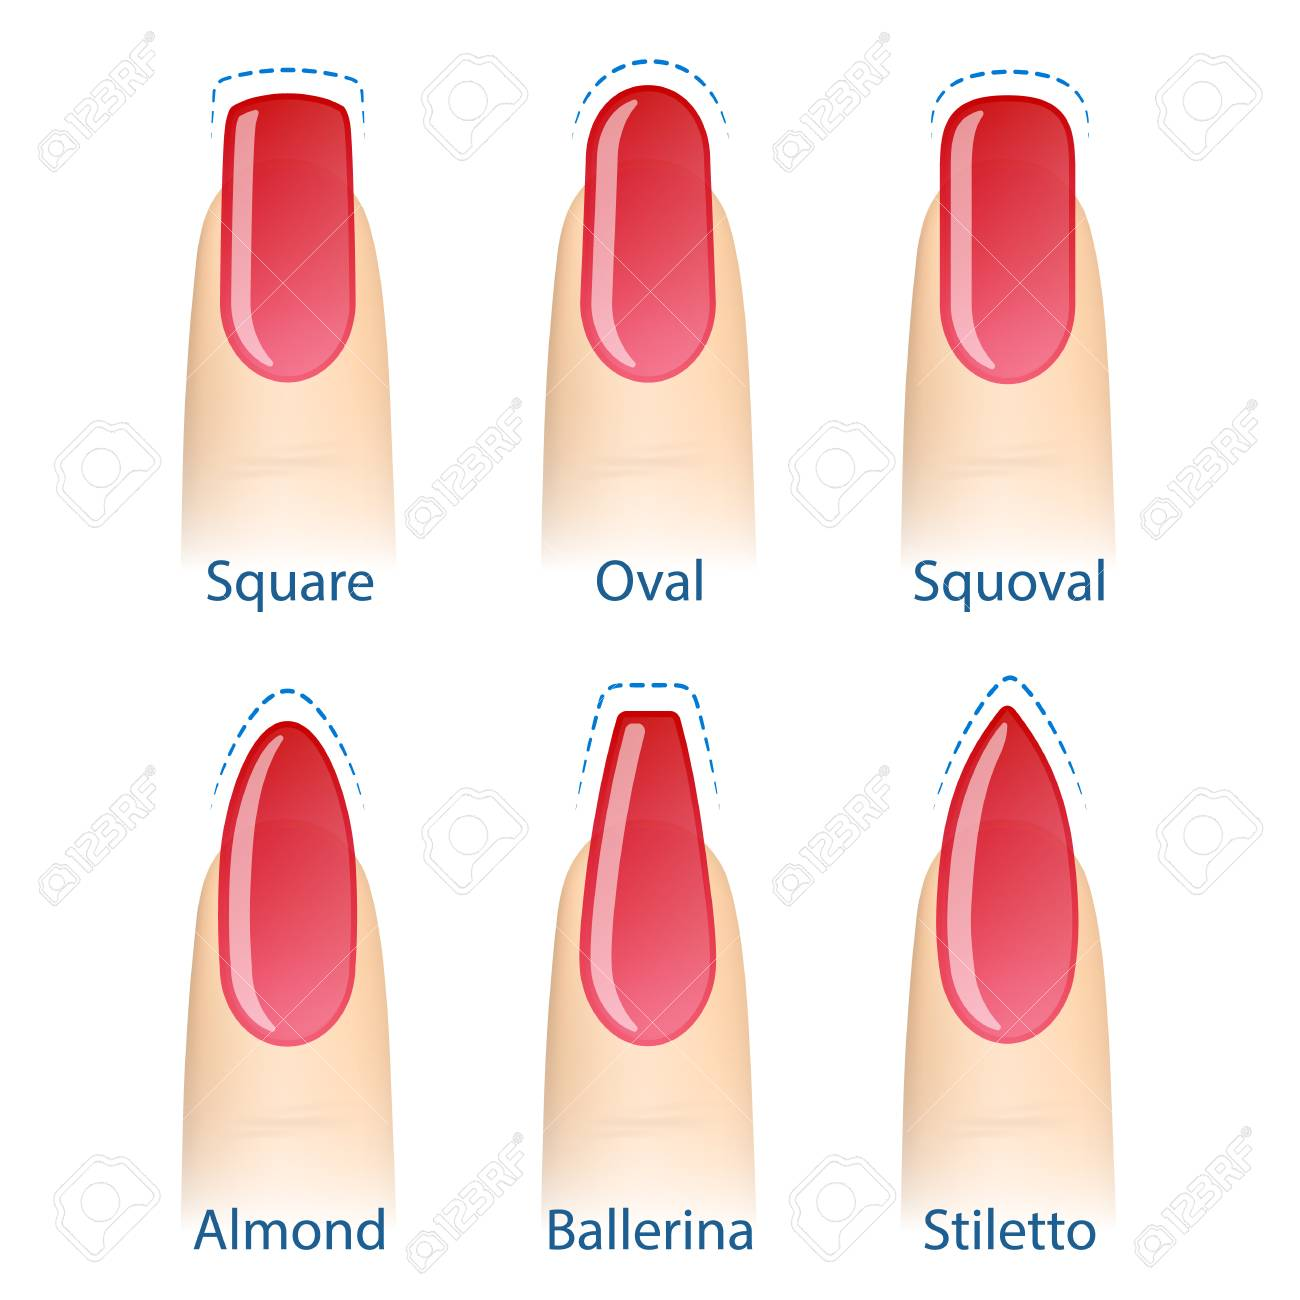 Nail Manicure, Set Of Nails Shapes - Oval, Square, Almond, Stiletto ...